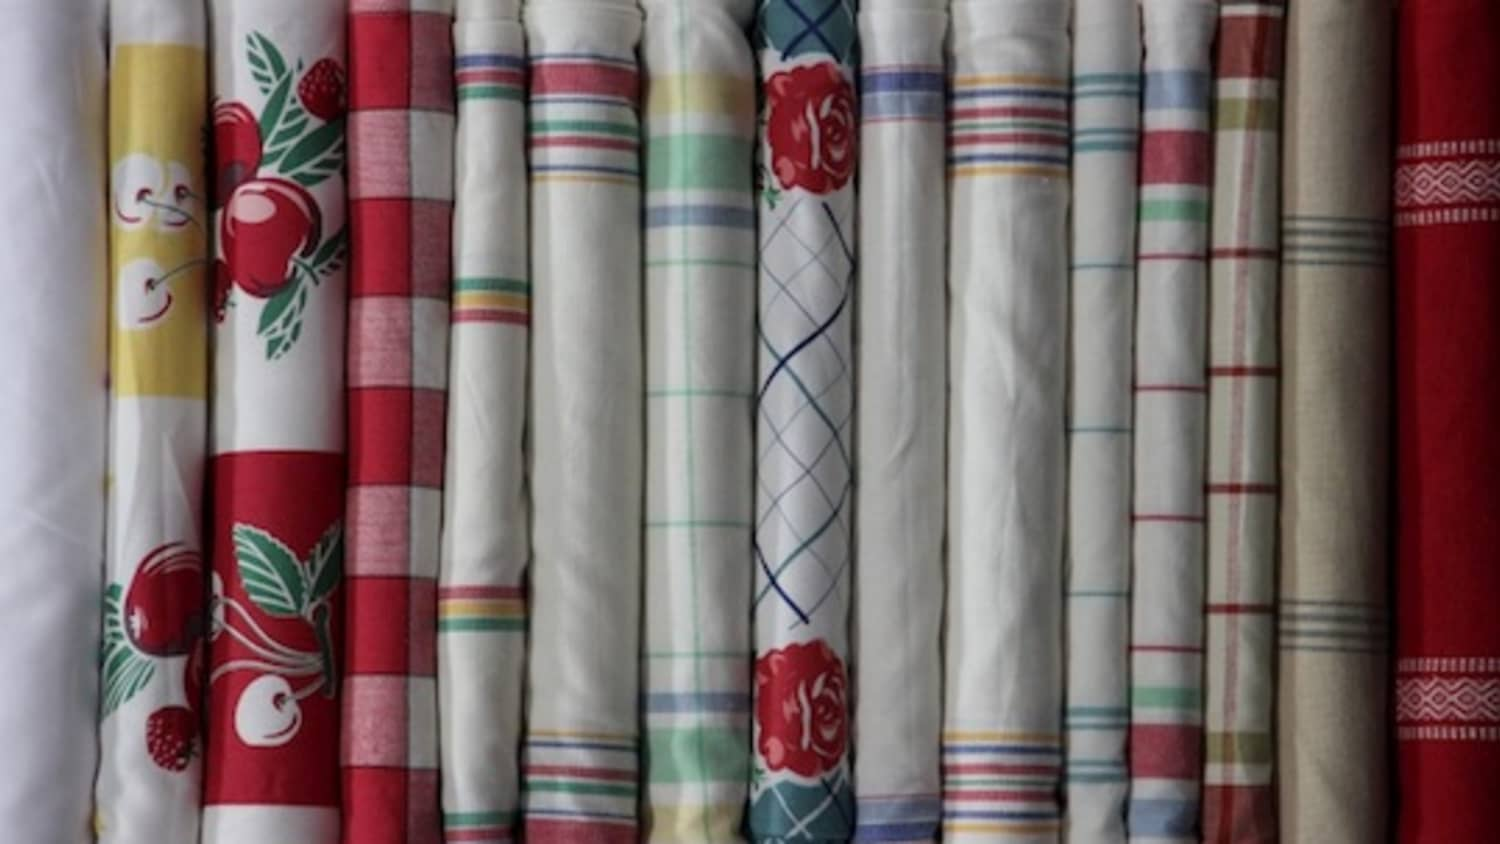 The Best Fabric For Making Your Own Easy Kitchen Towels